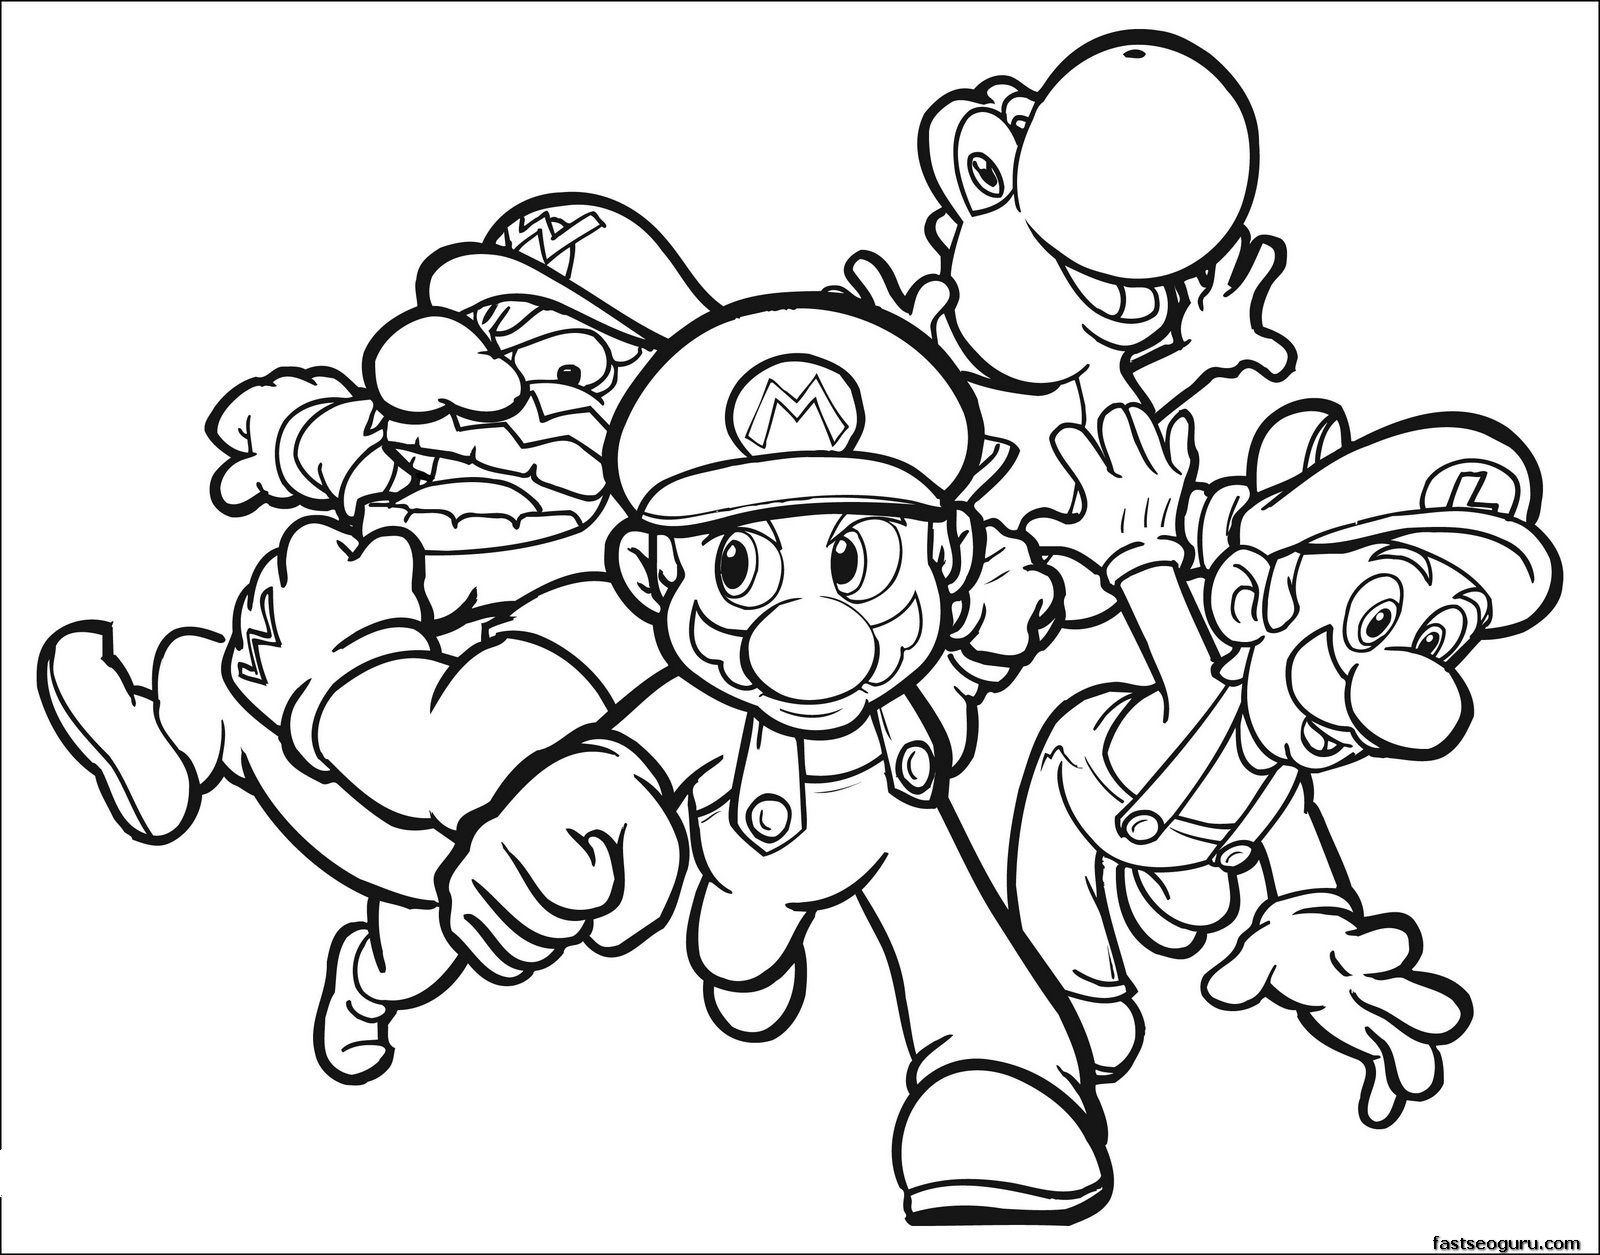 1600x1255 Lovely Cartoon Network Coloring Pages Cartoon Network Coloring